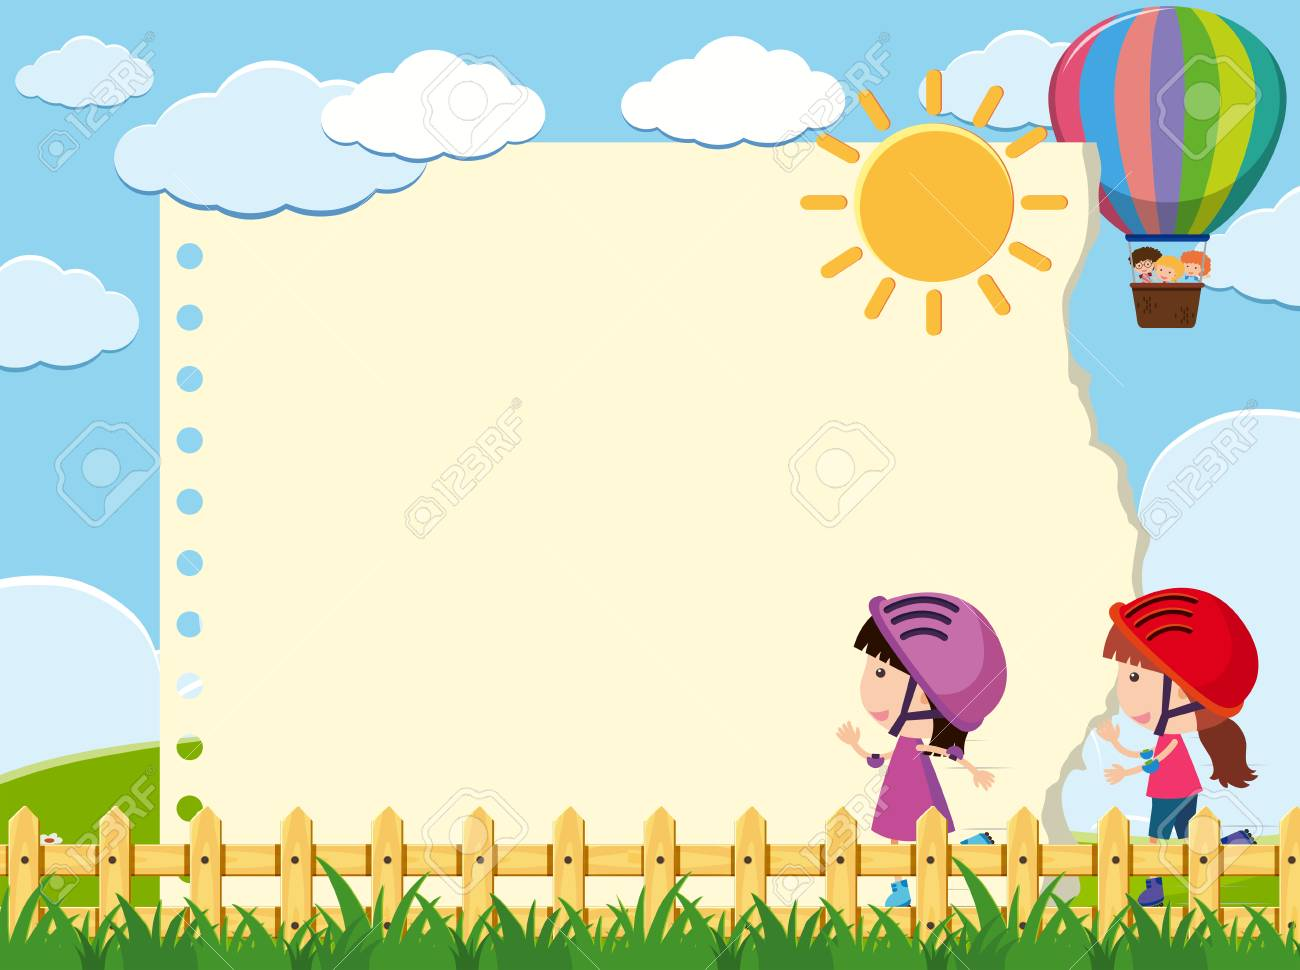 Border Template With Two Girls In Garden Illustration Royalty Free ...